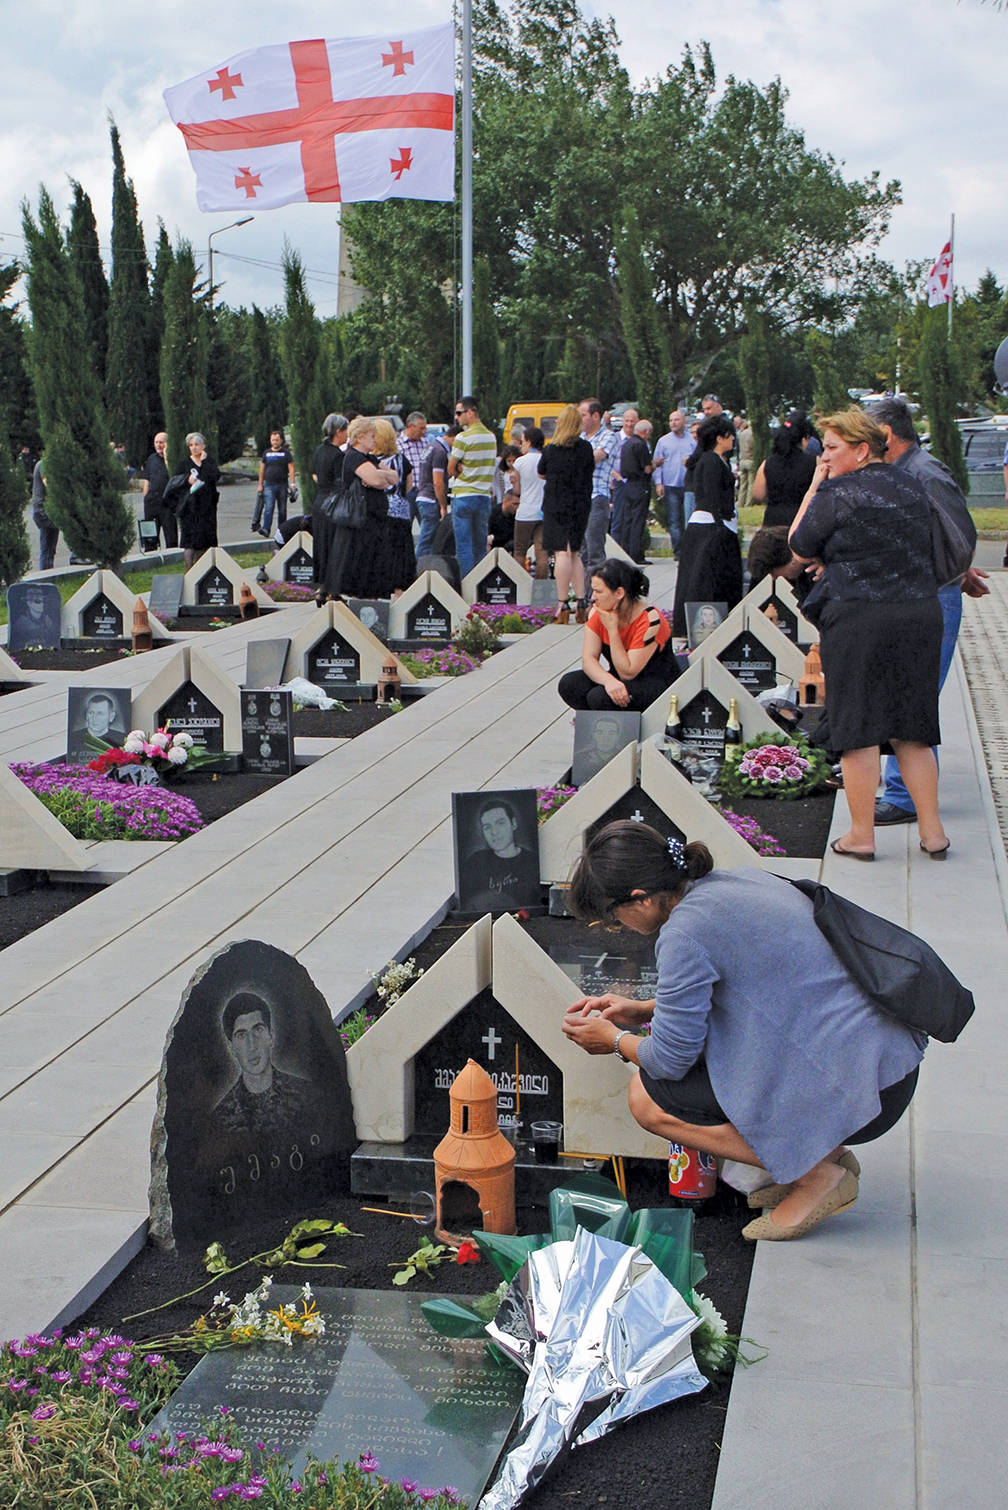 Georgians visit a military cemetery in Tbilisi in August 2013 during a ceremony in memory of the 2008 war with Russia. The war marked the use of cyber attack as part of a wider military strategy. [AFP/GETTY IMAGES]